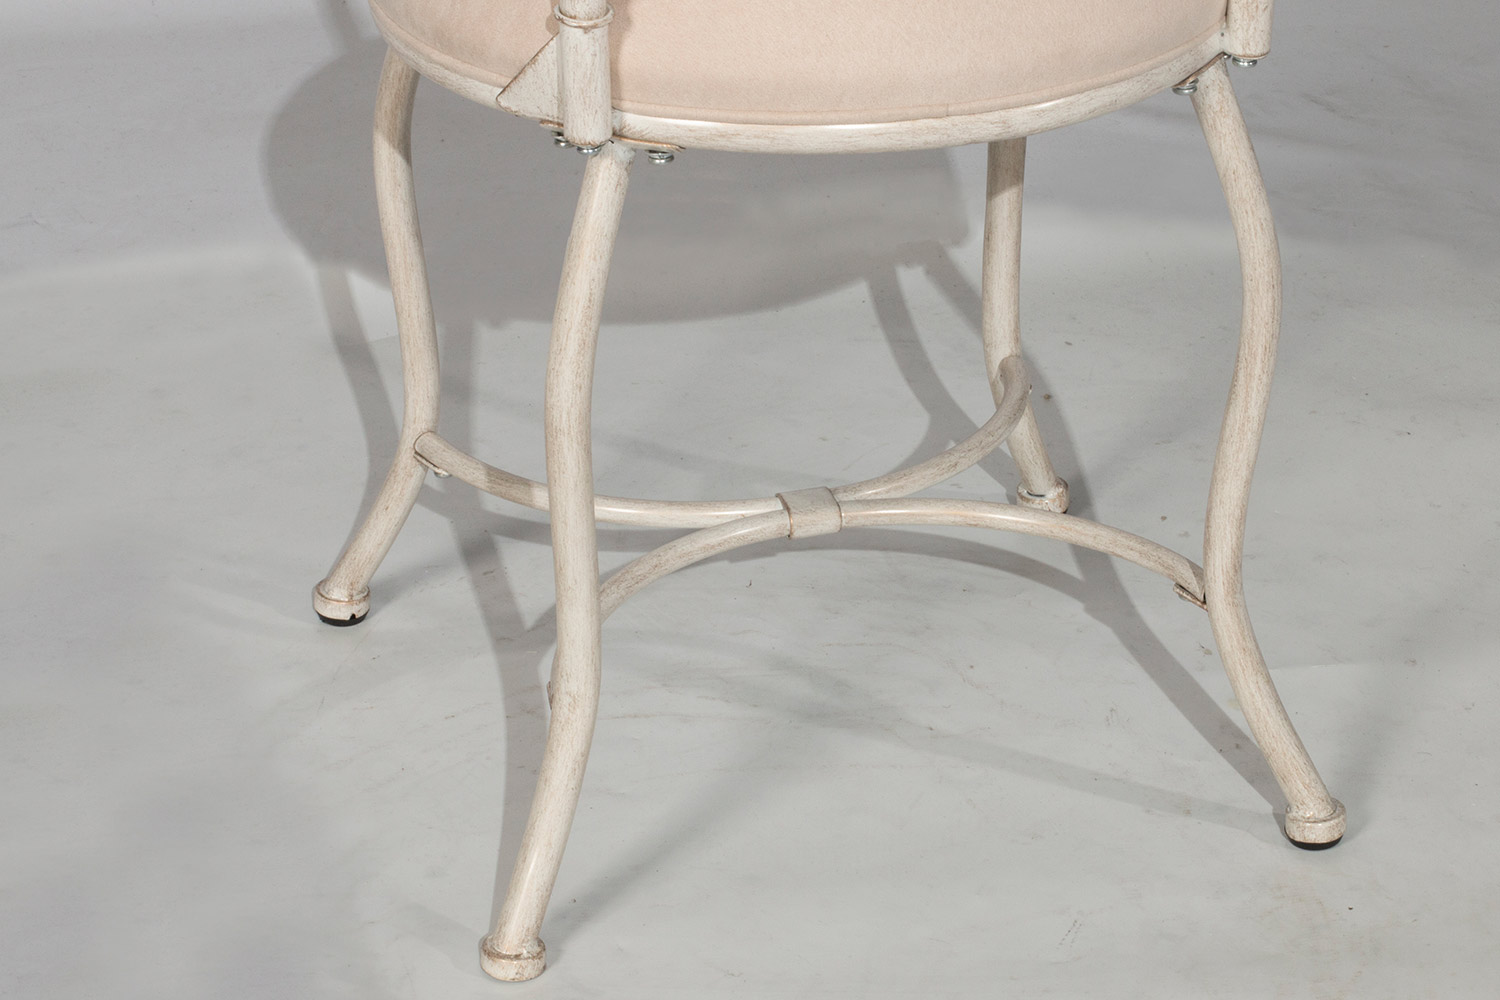 Hillsdale Sparta Vanity Stool - White with Gold Rub